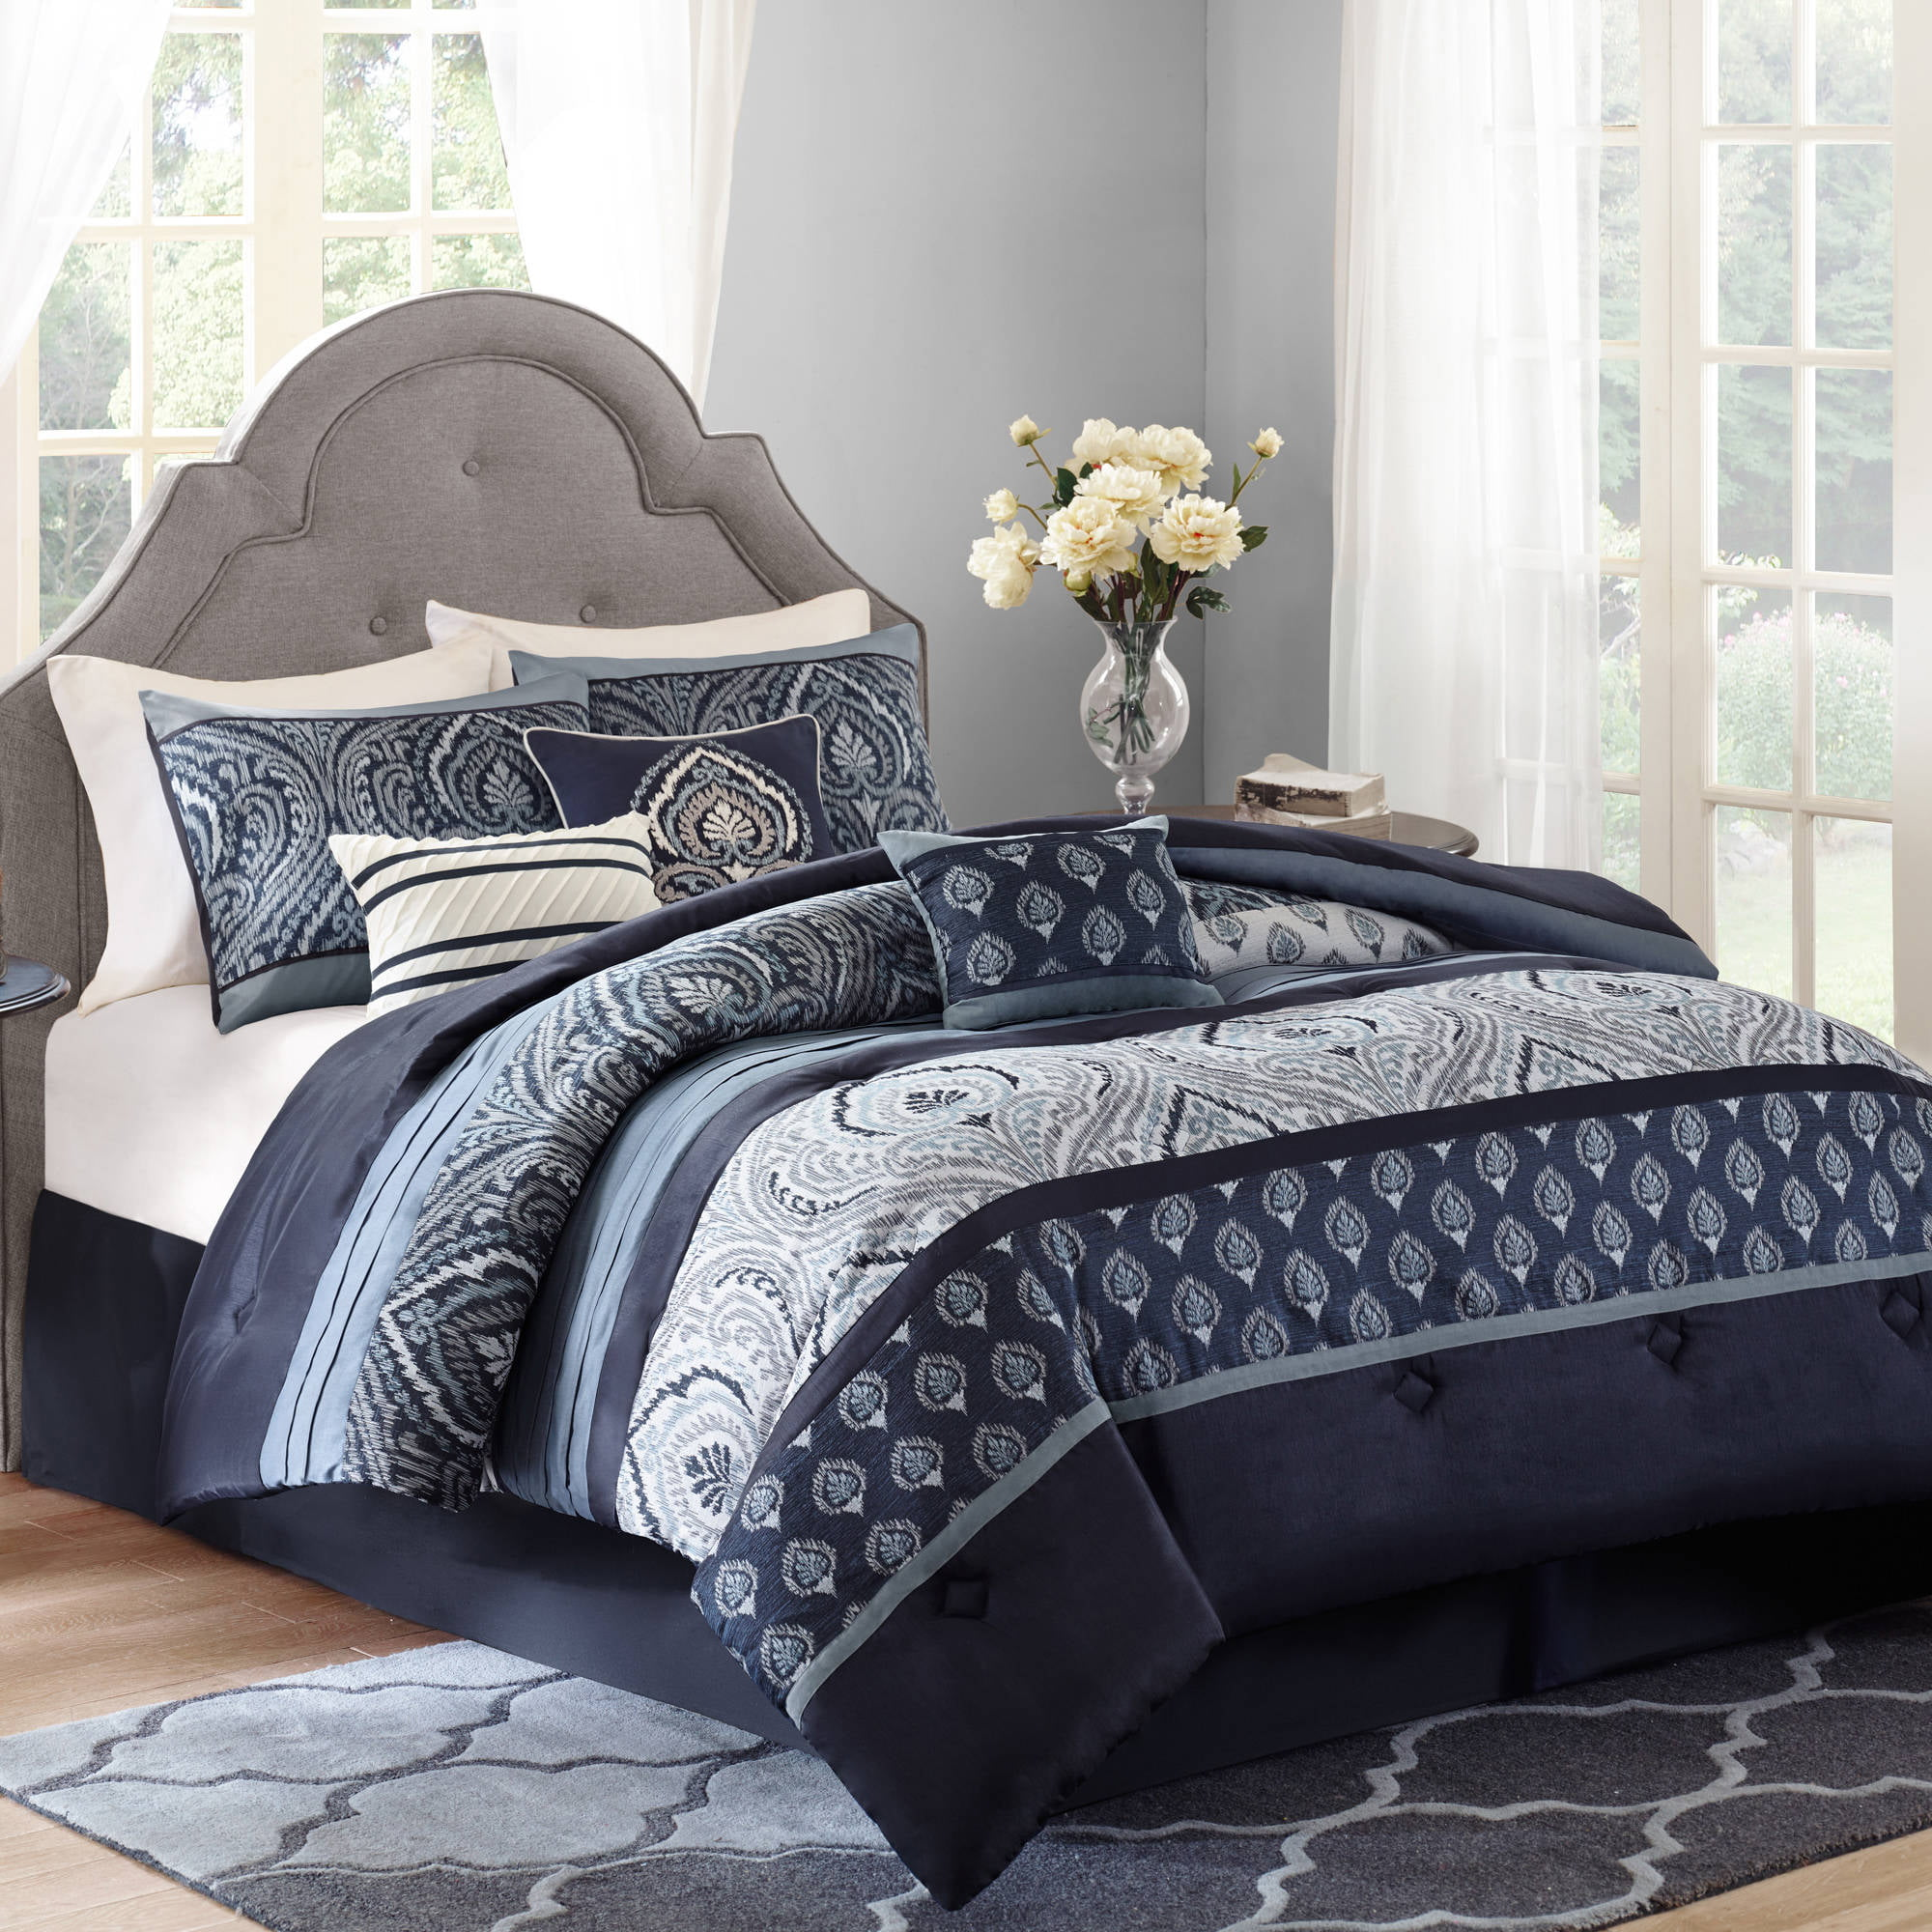 Better Homes and Gardens Damask 5 Piece Bedding Comforter Set